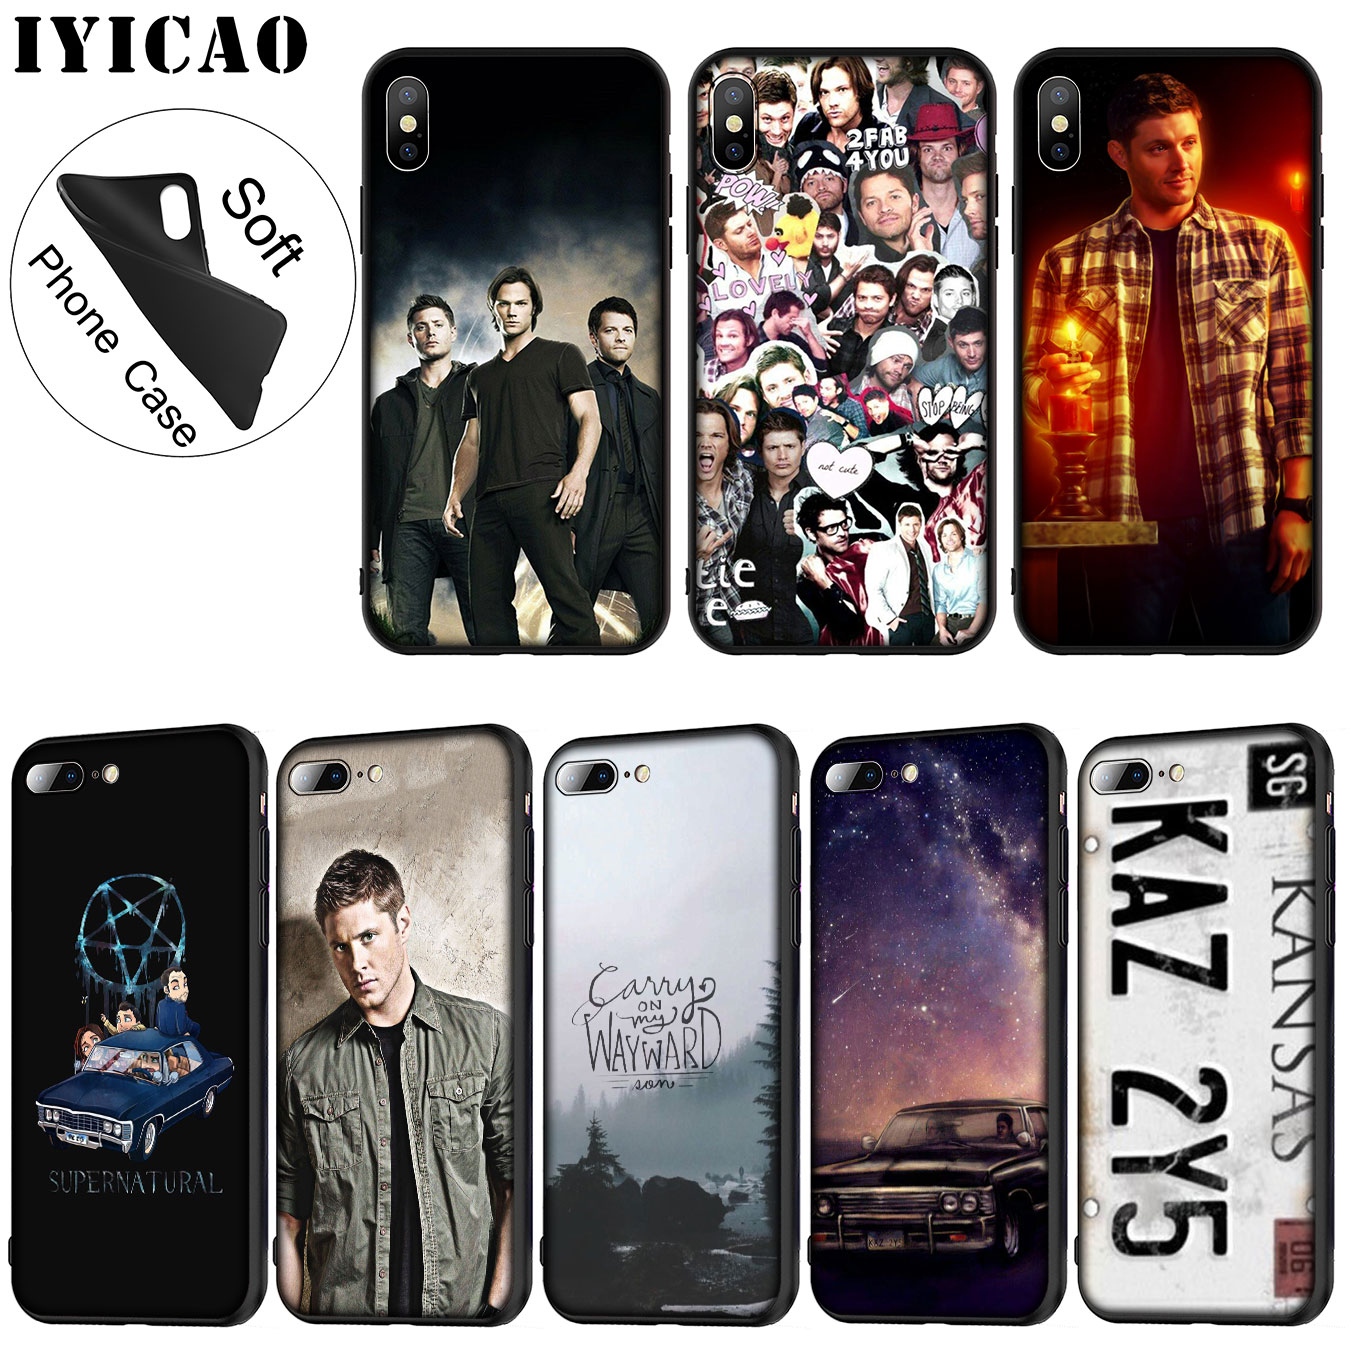 IYICAO Supernatural Jared Padalecki Soft Silicone Phone Case for iPhone XR X XS 11 Pro Max 6 6S 7 8 Plus 5 5S SE 10 Black Cover image